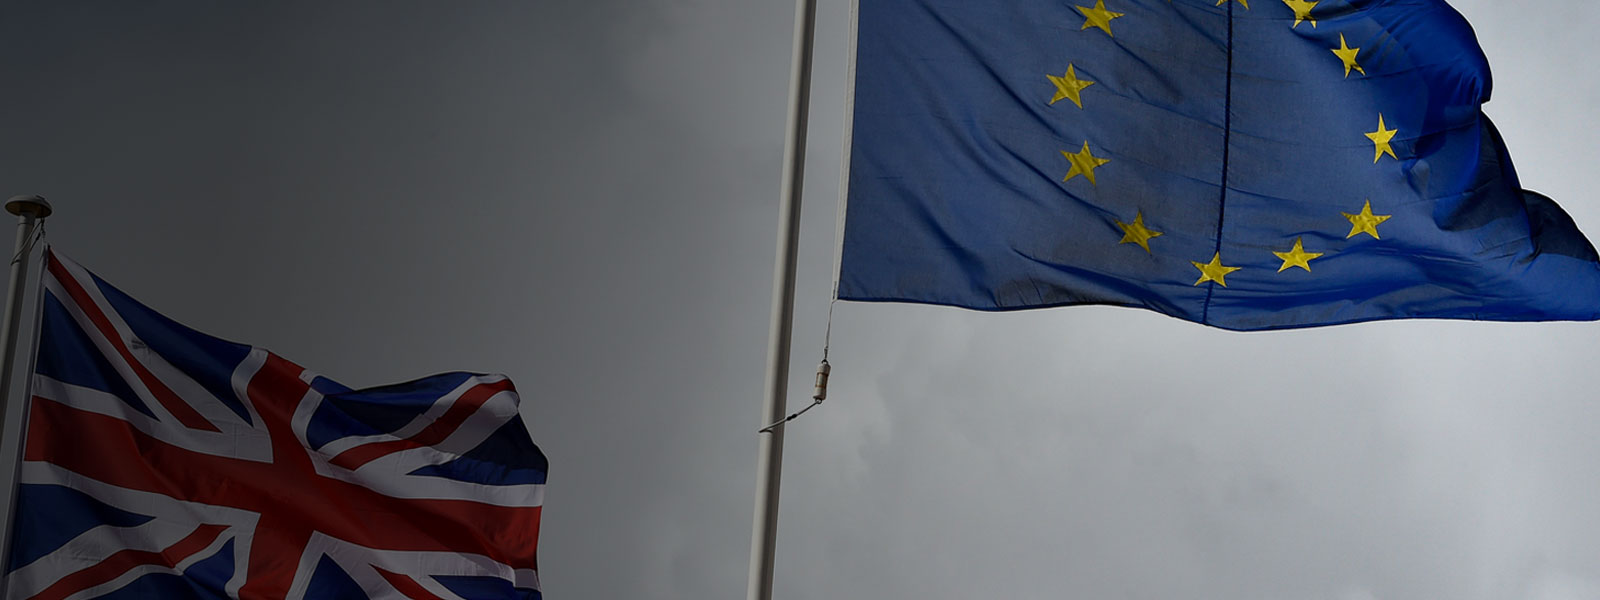 Britain votes to leave the EU. What happens now?